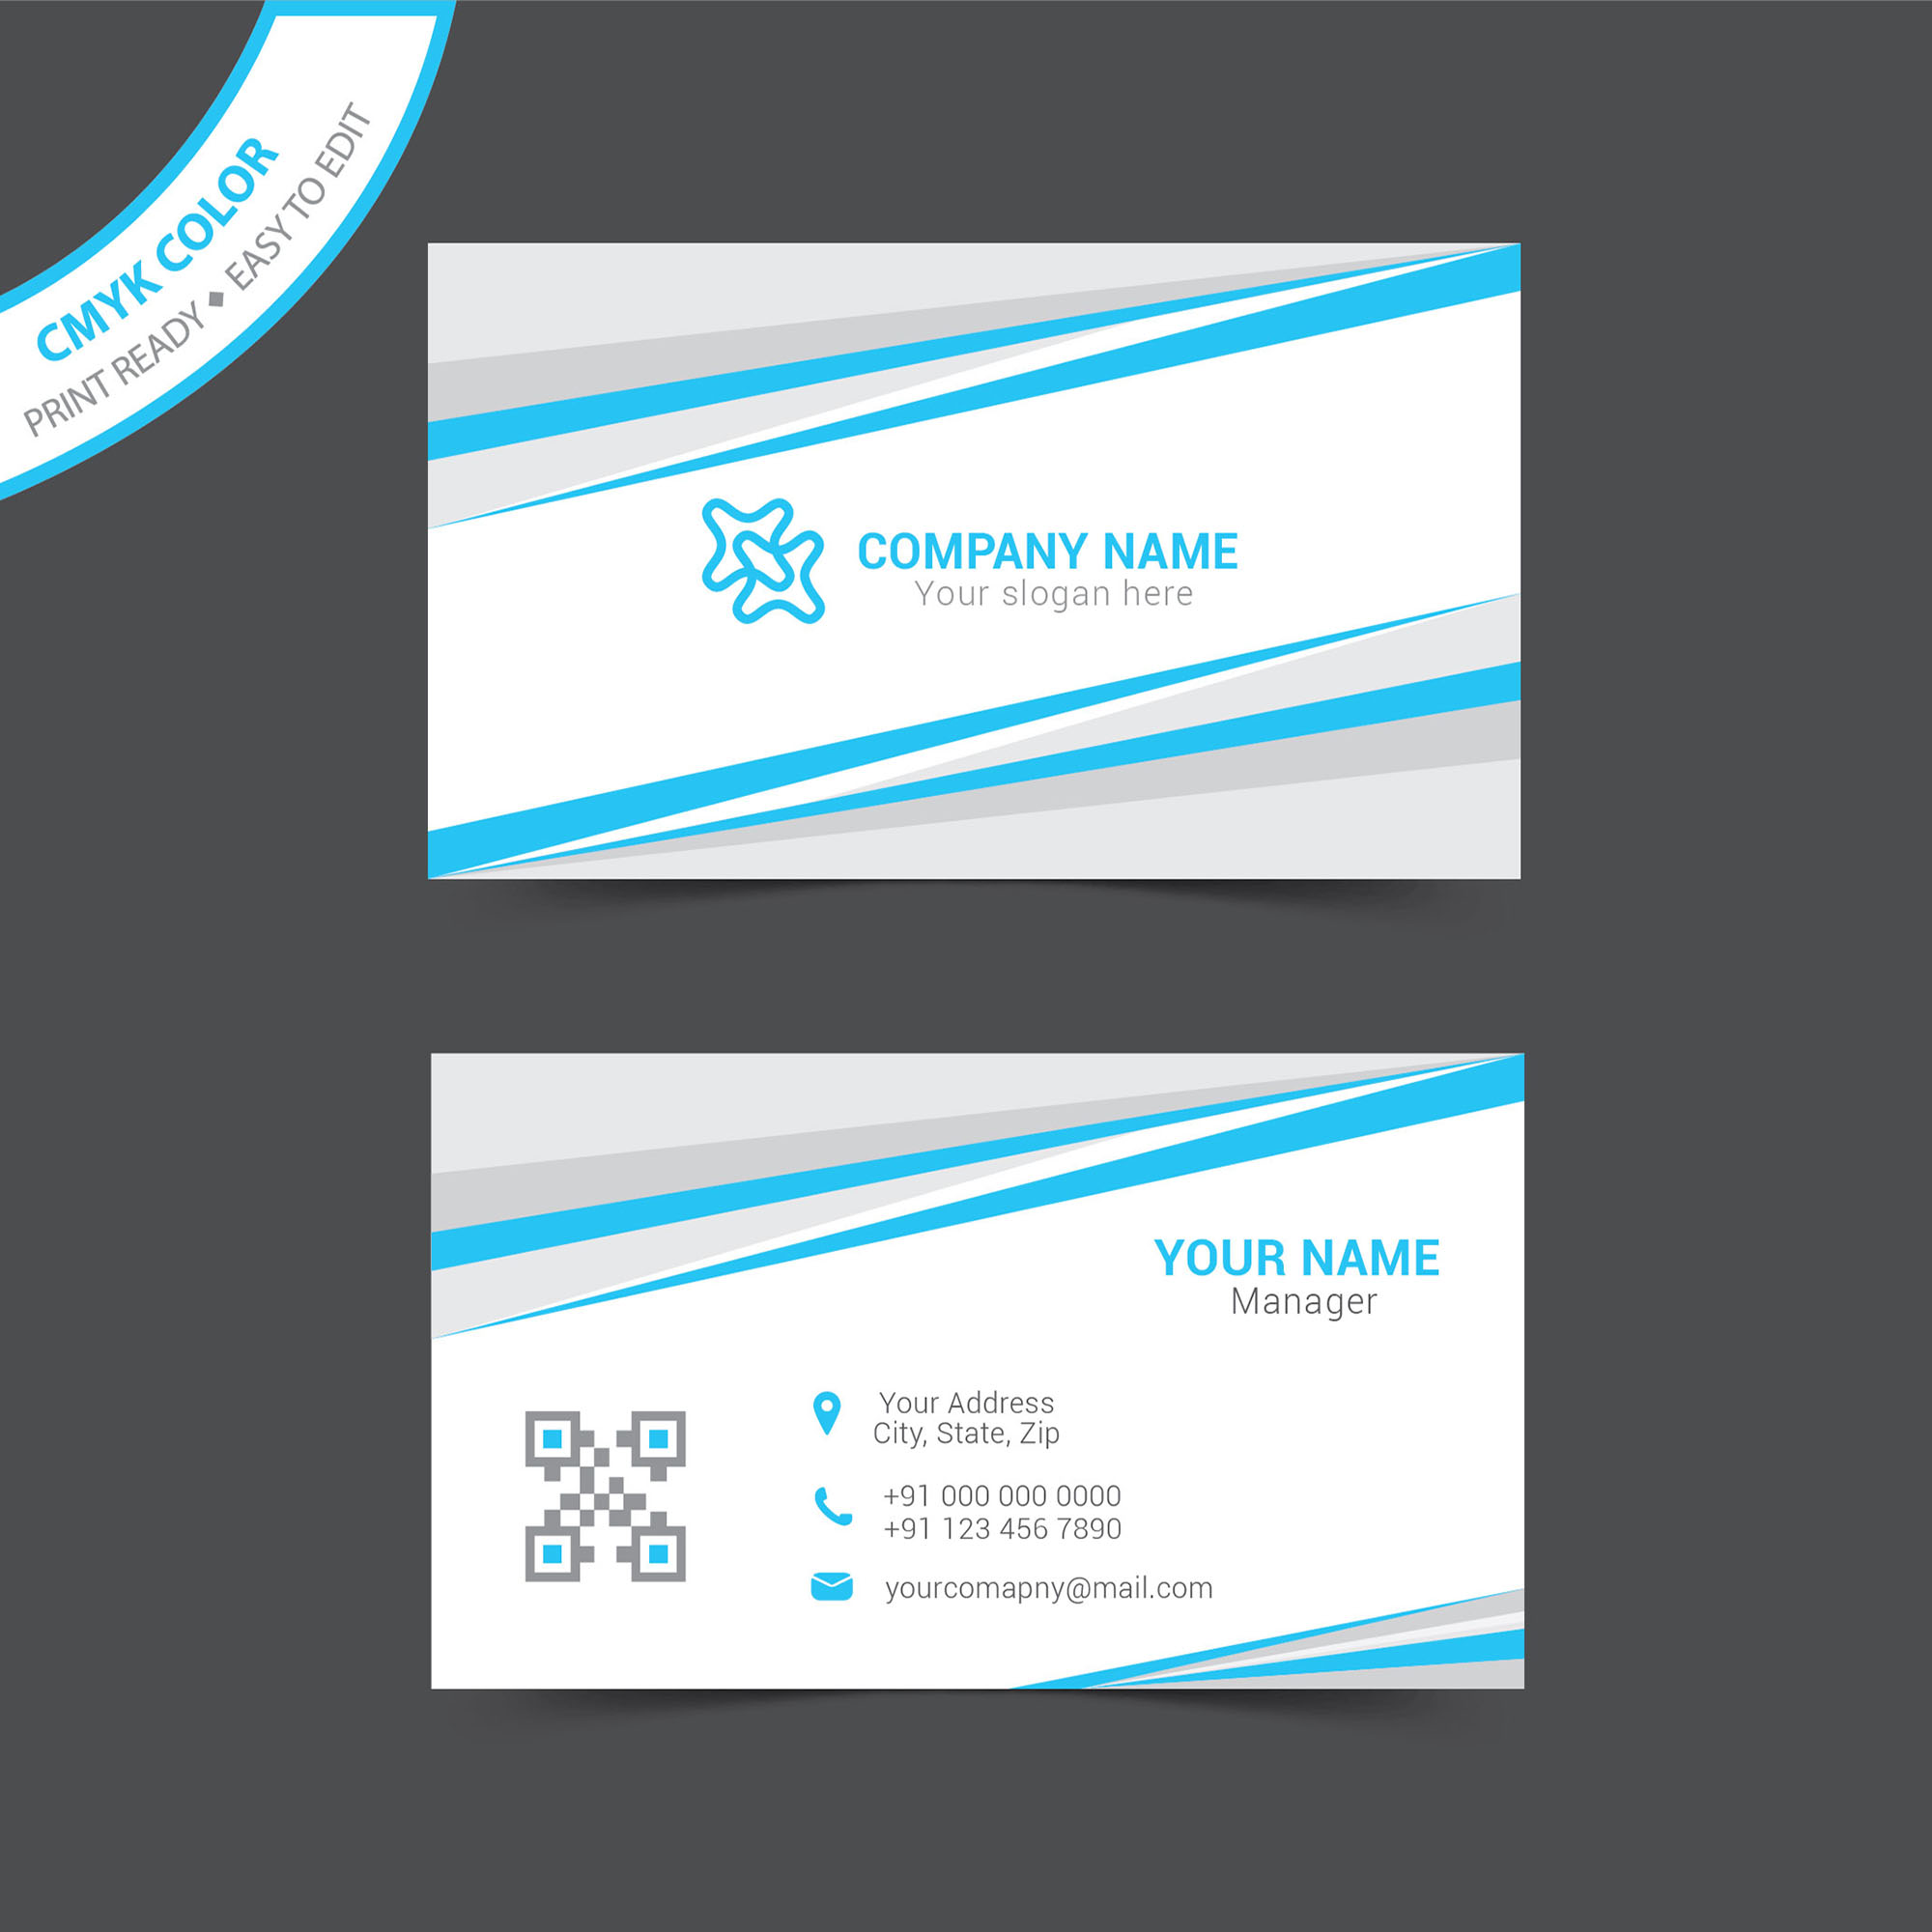 Simple business card template free download wisxi business card business cards business card design business card template design templates flashek Image collections